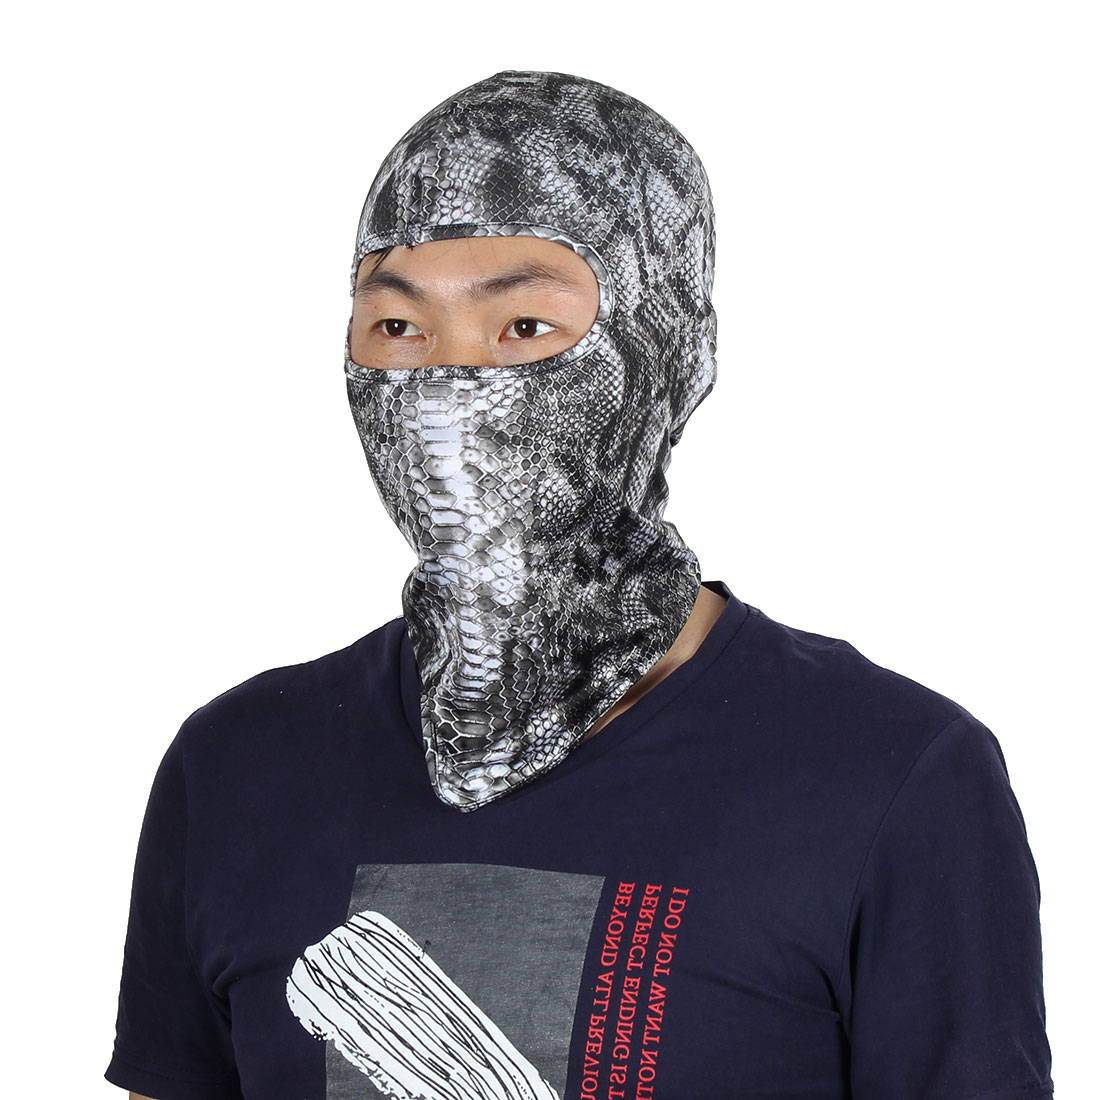 Serpentine Pattern Full Coverage Face Neck Protector Hood Helmet Balaclava Black by Unique-Bargains